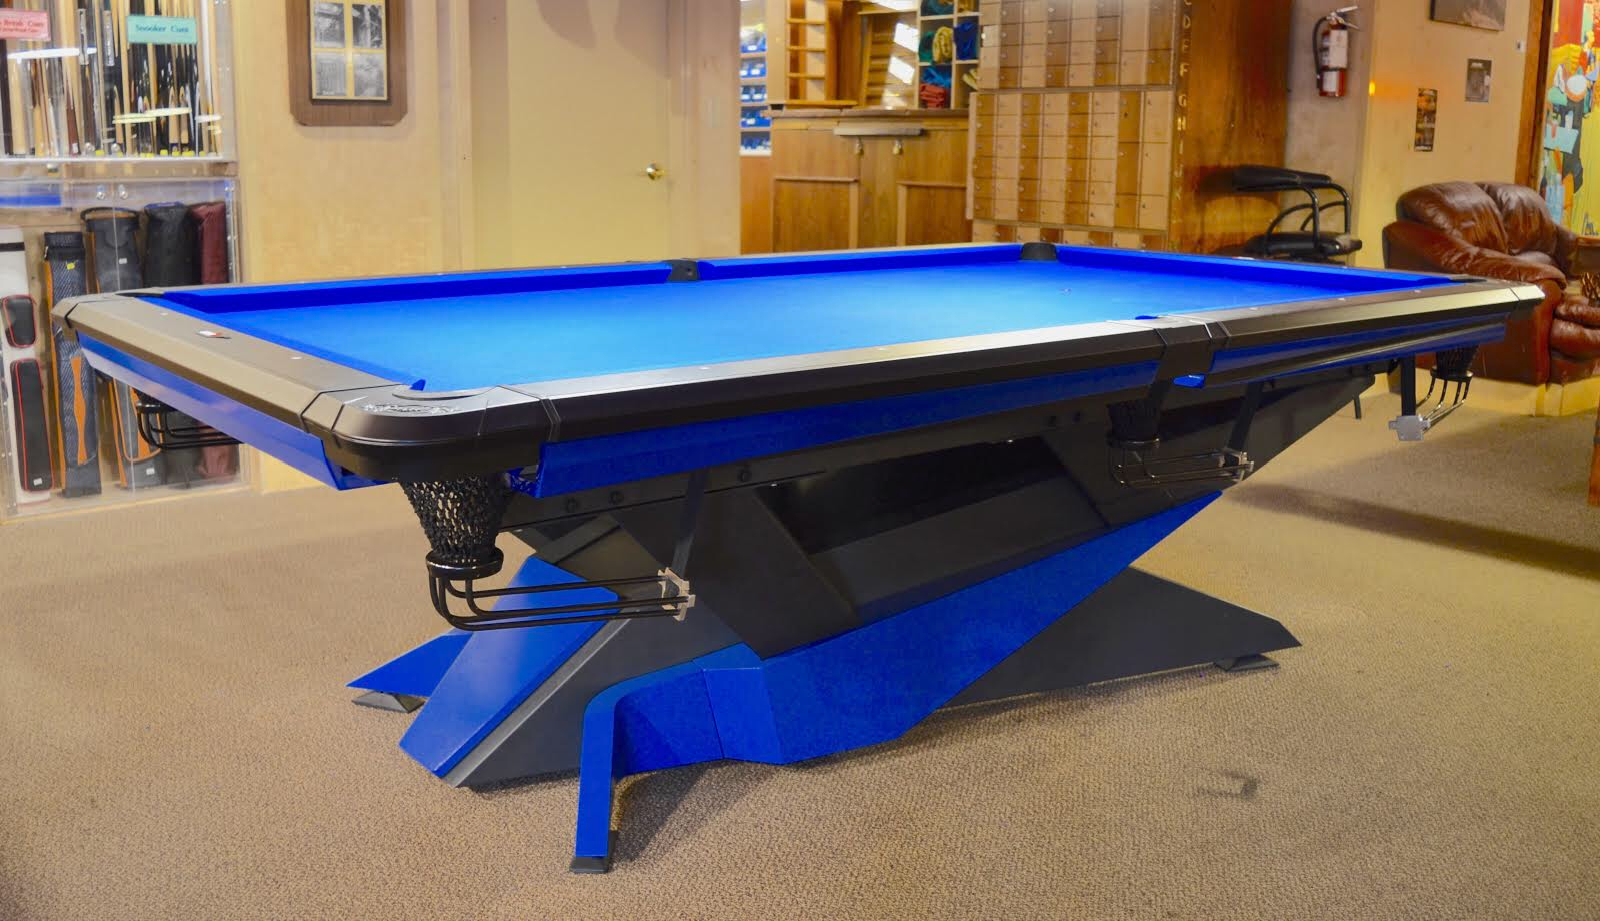 How to choose your home own pool table? Let me tell you